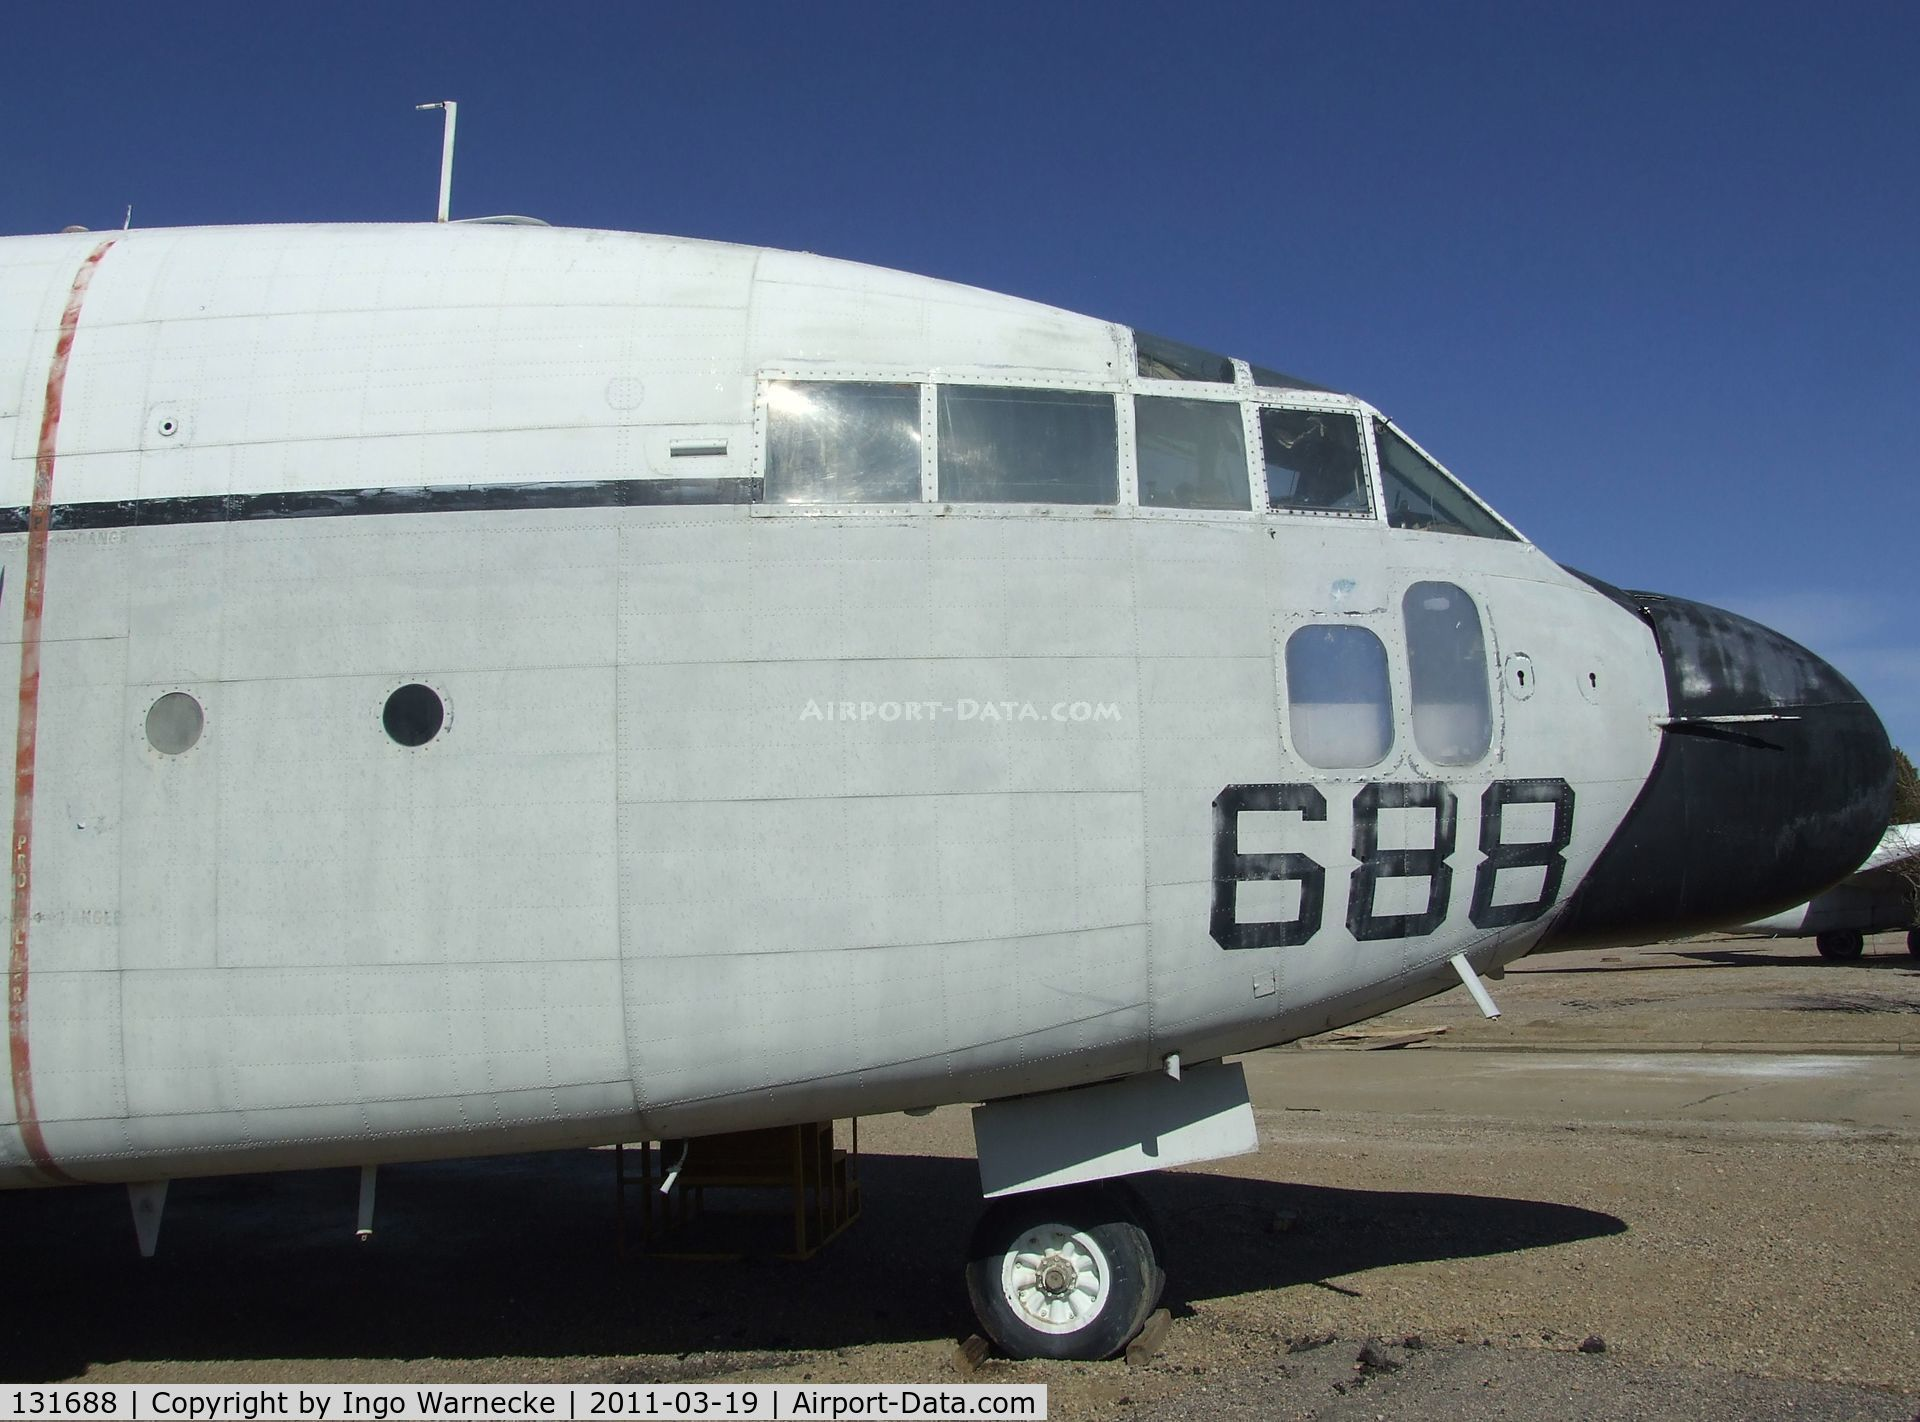 131688, Fairchild C-119F Flying Boxcar C/N 10901, Fairchild C-119F Flying Boxcar at the Pueblo Weisbrod Aircraft Museum, Pueblo CO